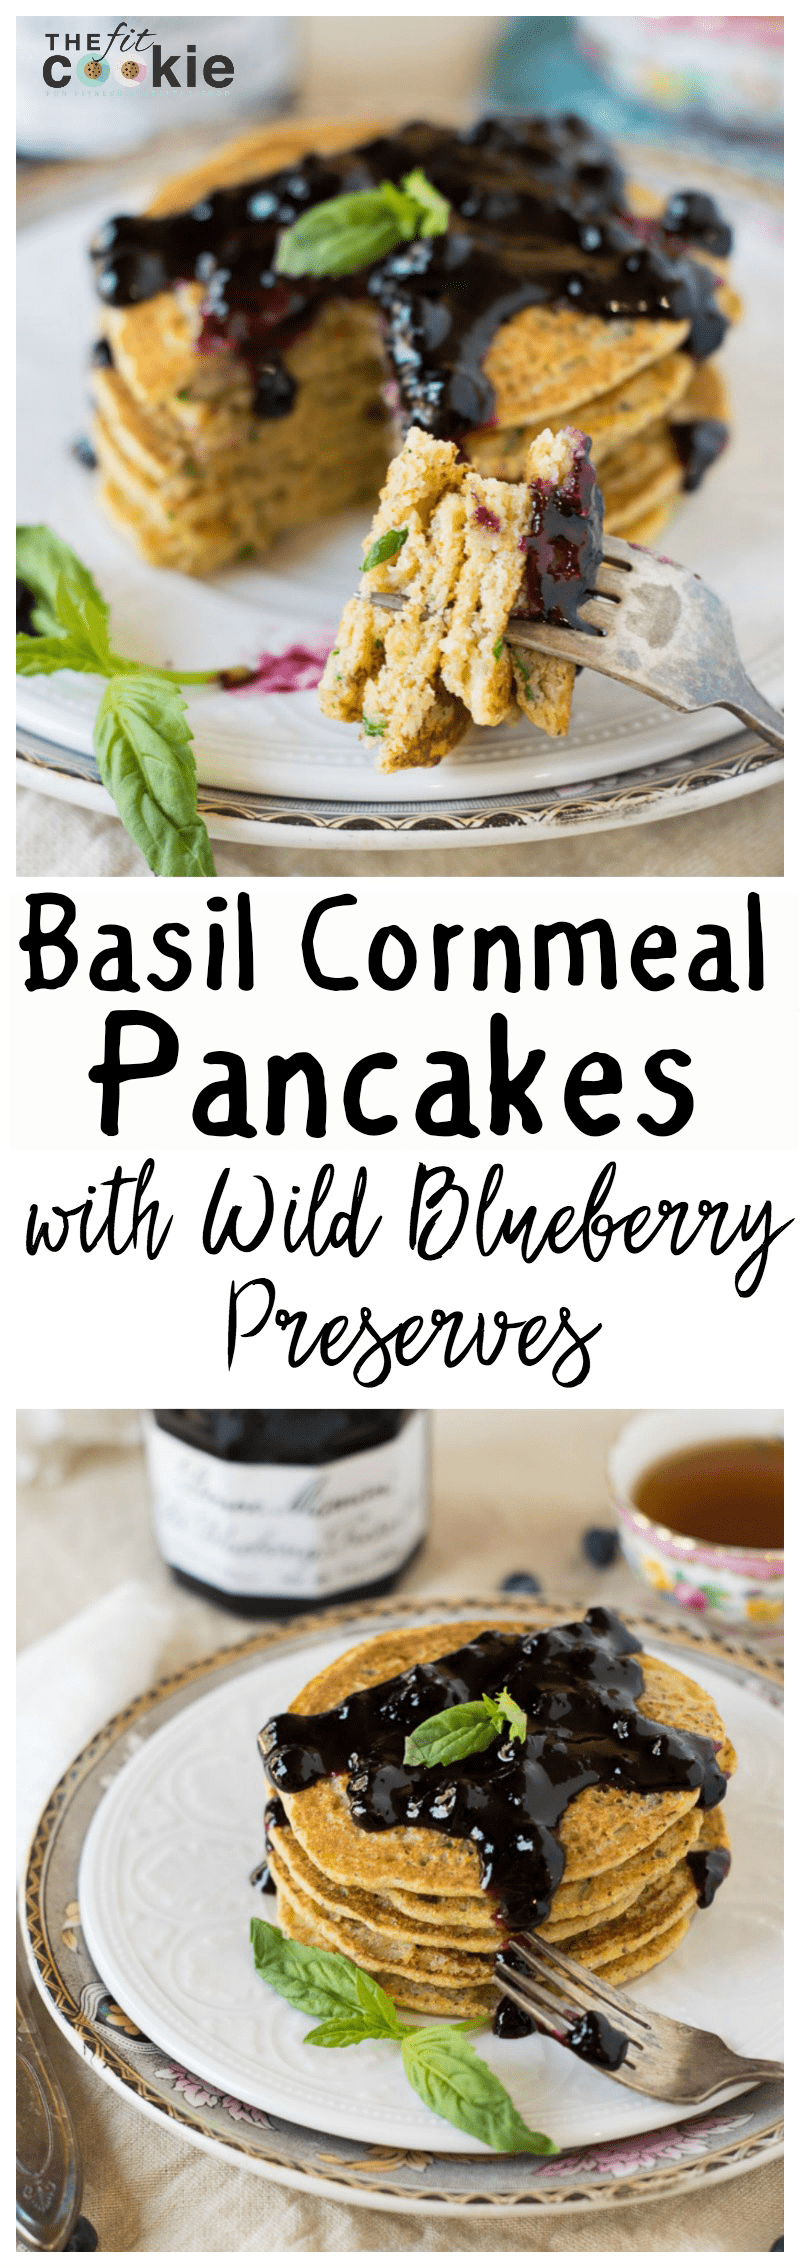 Looking for some fresh breakfast and brunch ideas? Make some Basil Cornmeal Pancakes with Wild Blueberry Preserves! The flavors blend beautifully in these gluten-free and vegan cornmeal pancakes - @TheFitCookie #AD @BonneMamanUS #BonneMaman #SayItWithHomemade